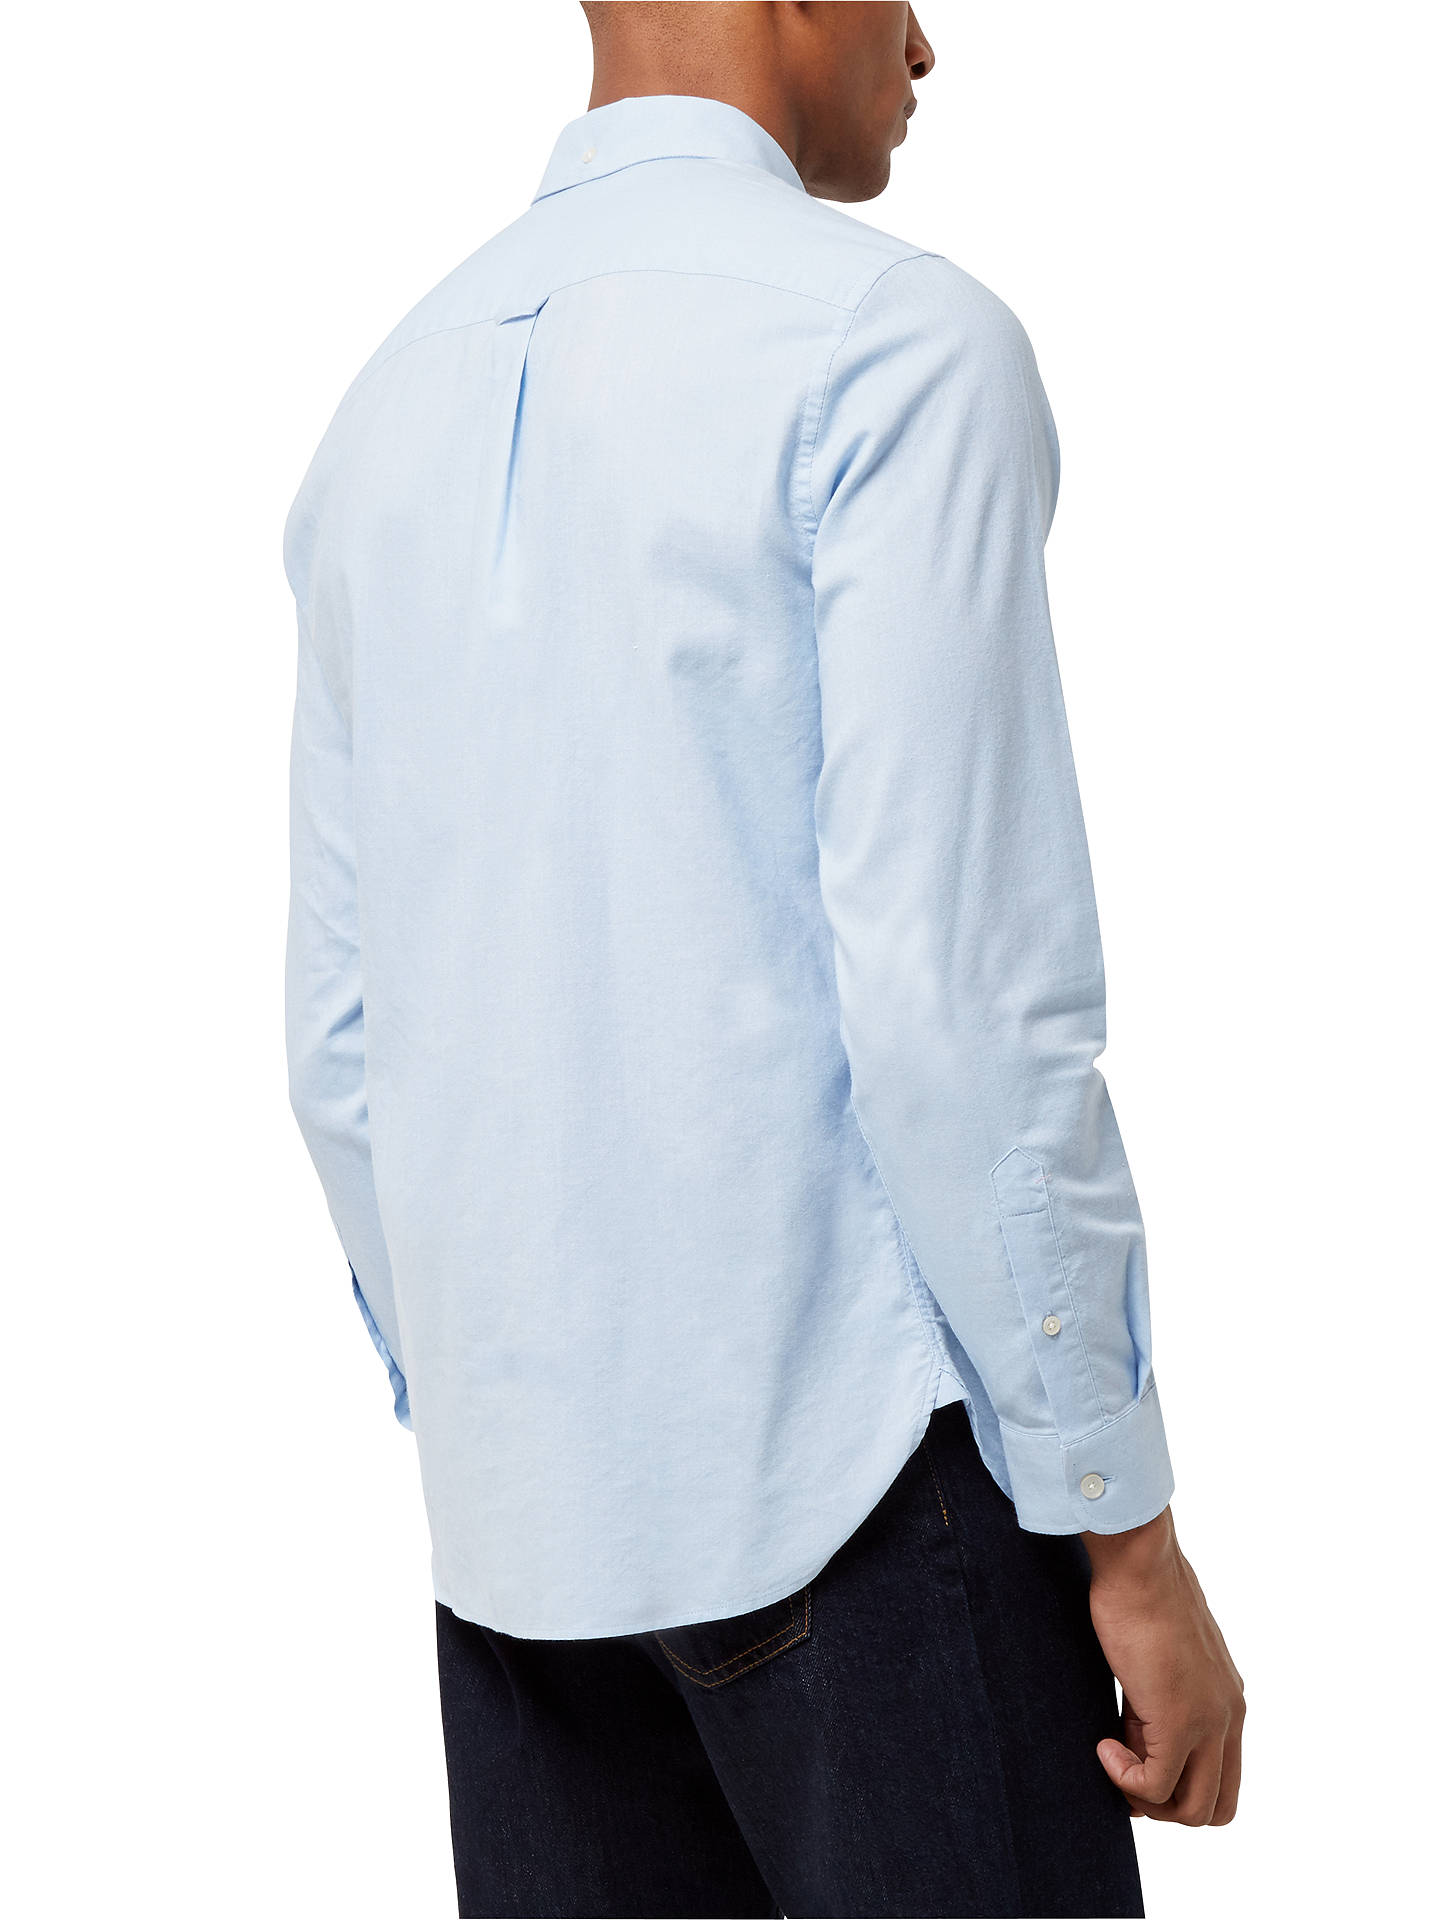 BuyJaeger Soft Touch Oxford Shirt, Light Blue, S Online at johnlewis.com